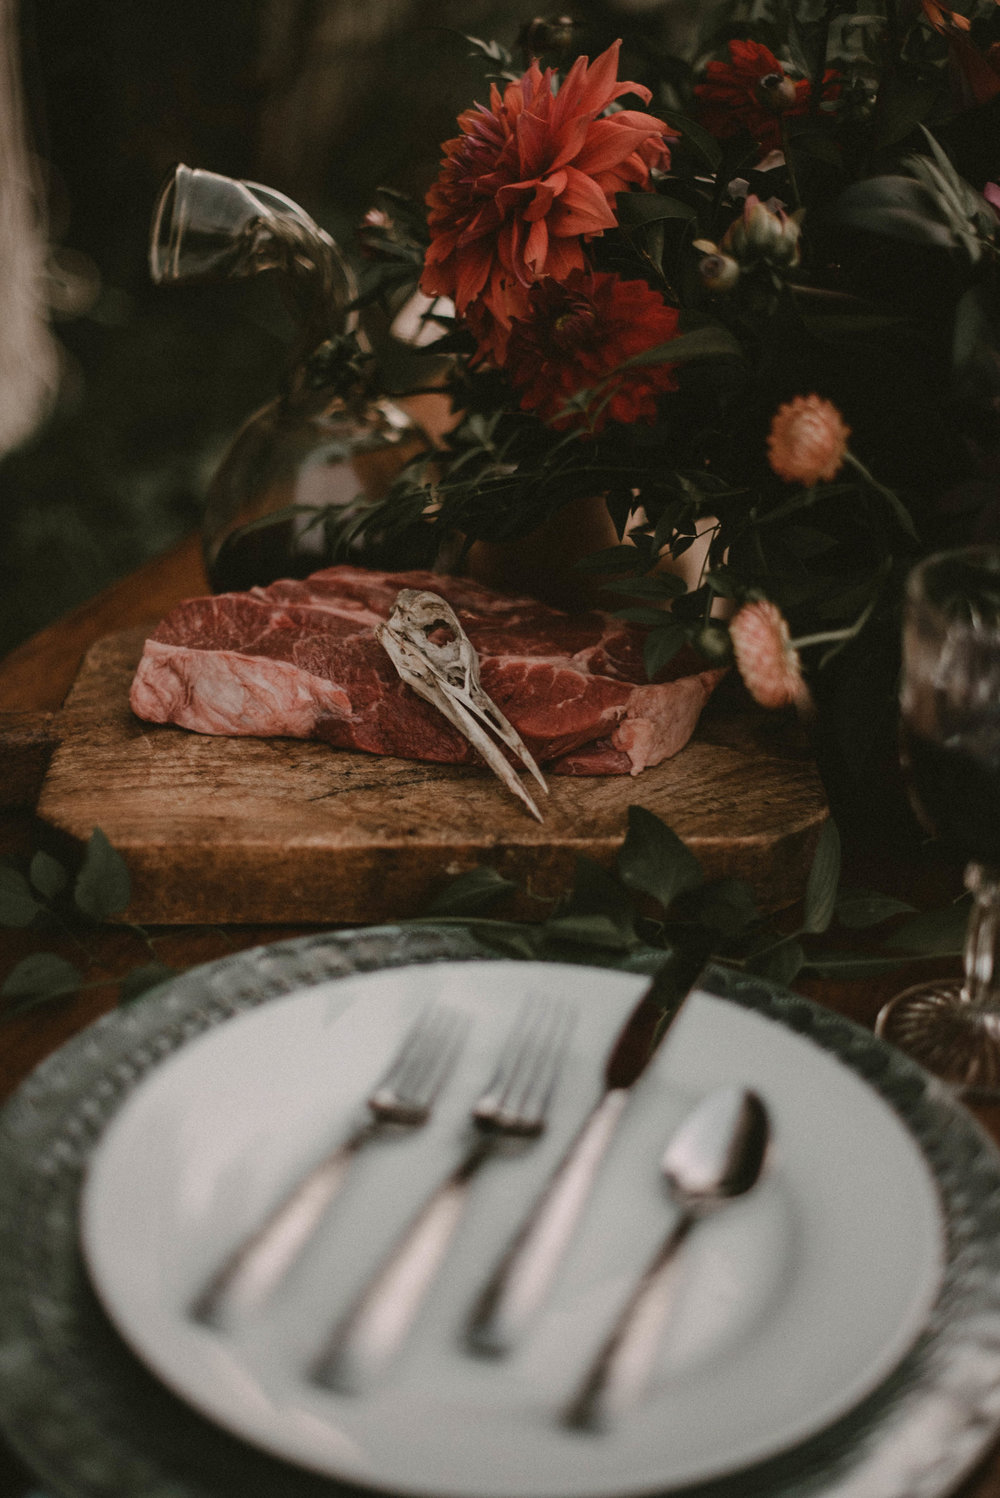 Raw meat on the wedding table